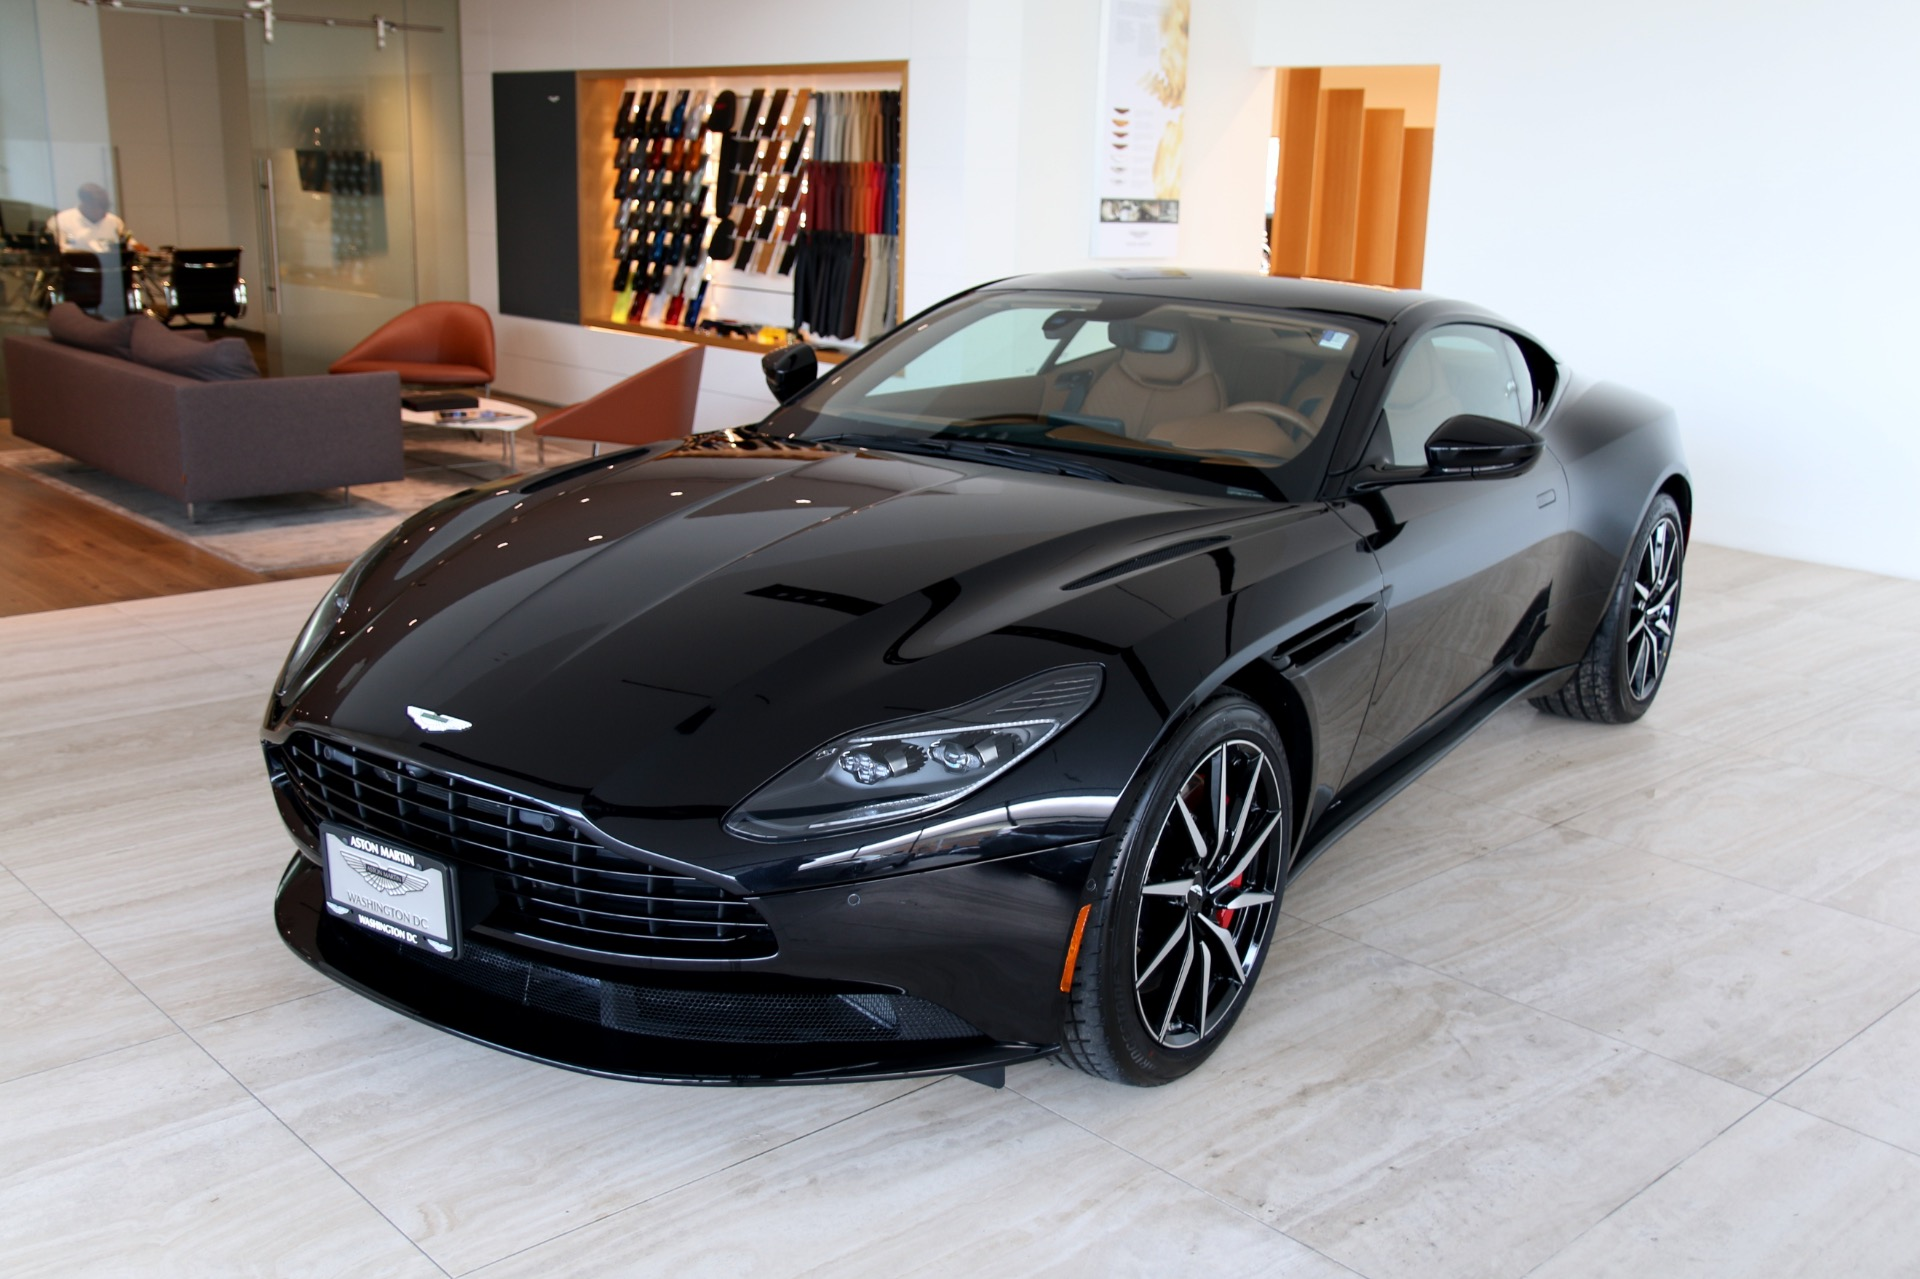 2018 Aston Martin Db11 V8 Stock 8l04040 For Sale Near Vienna Va